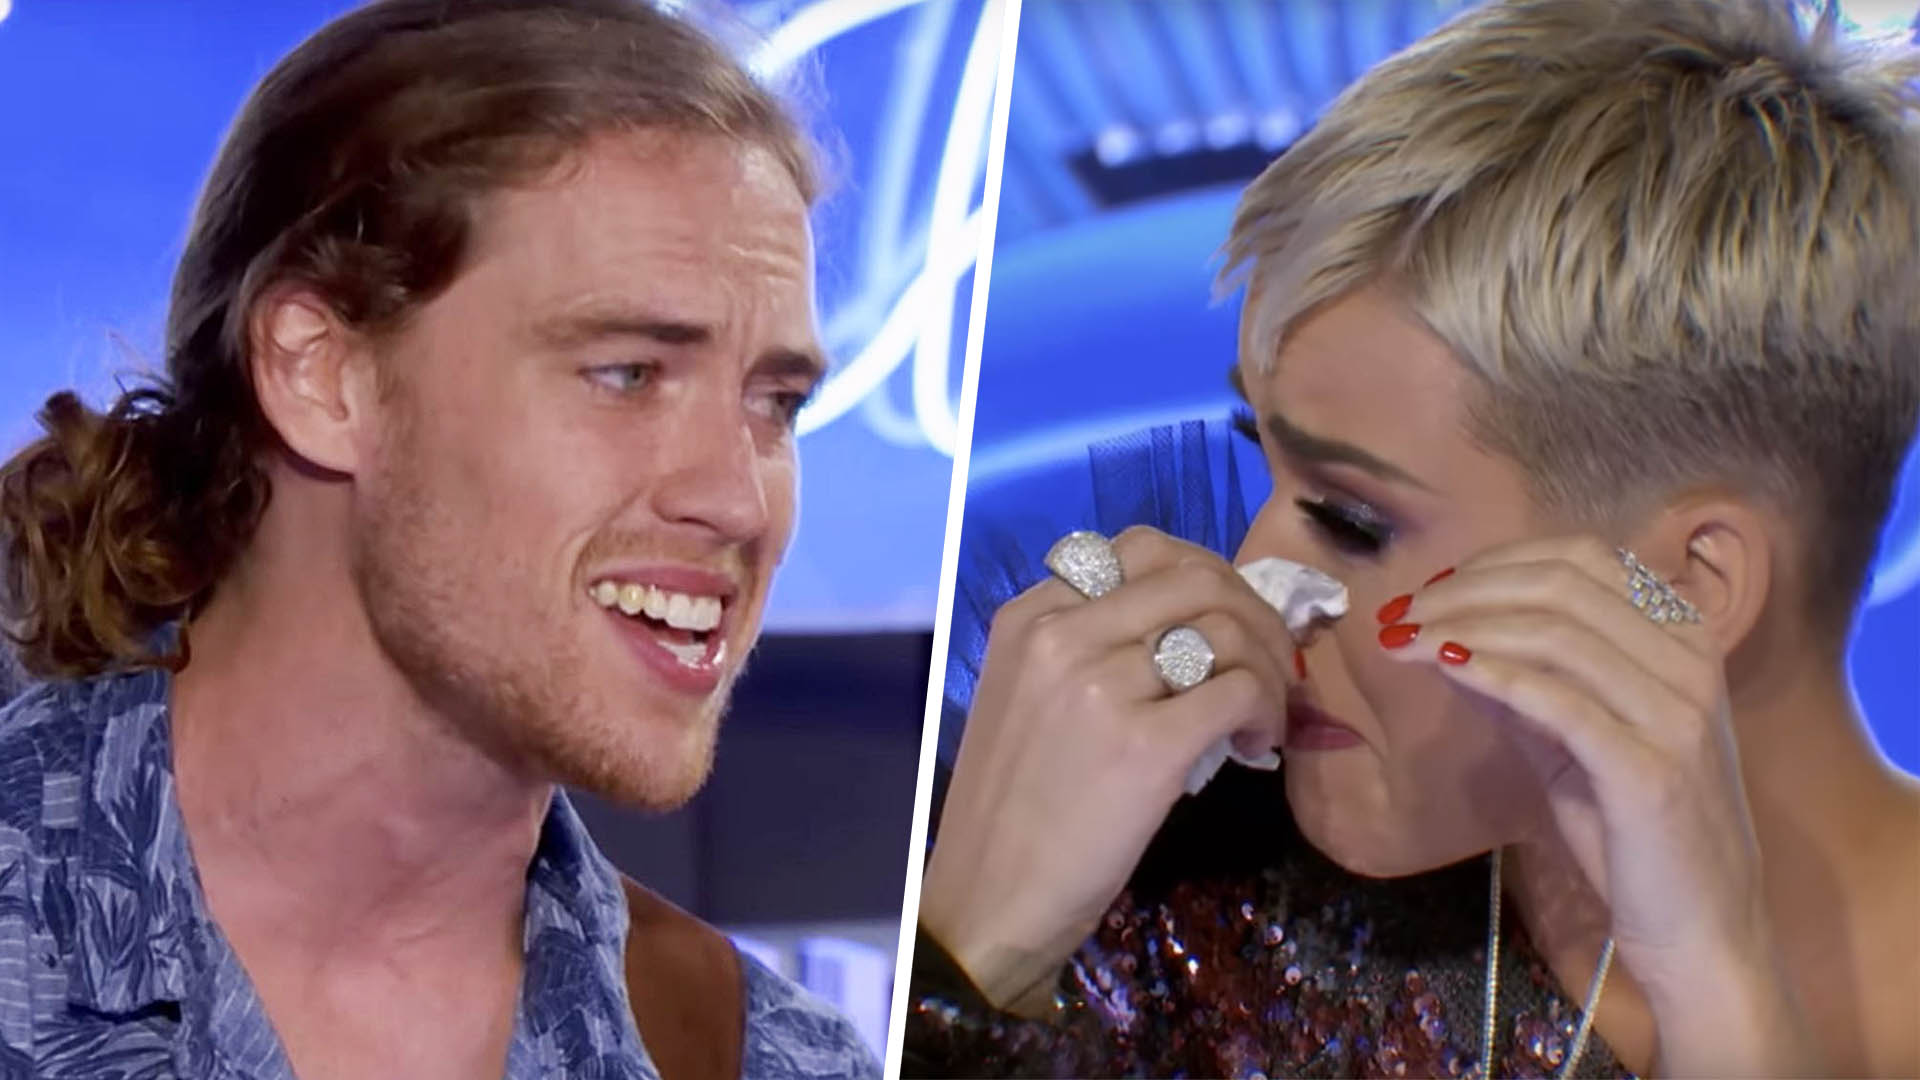 Formerly paralyzed singer brings Katy Perry to tears on 'American Idol'